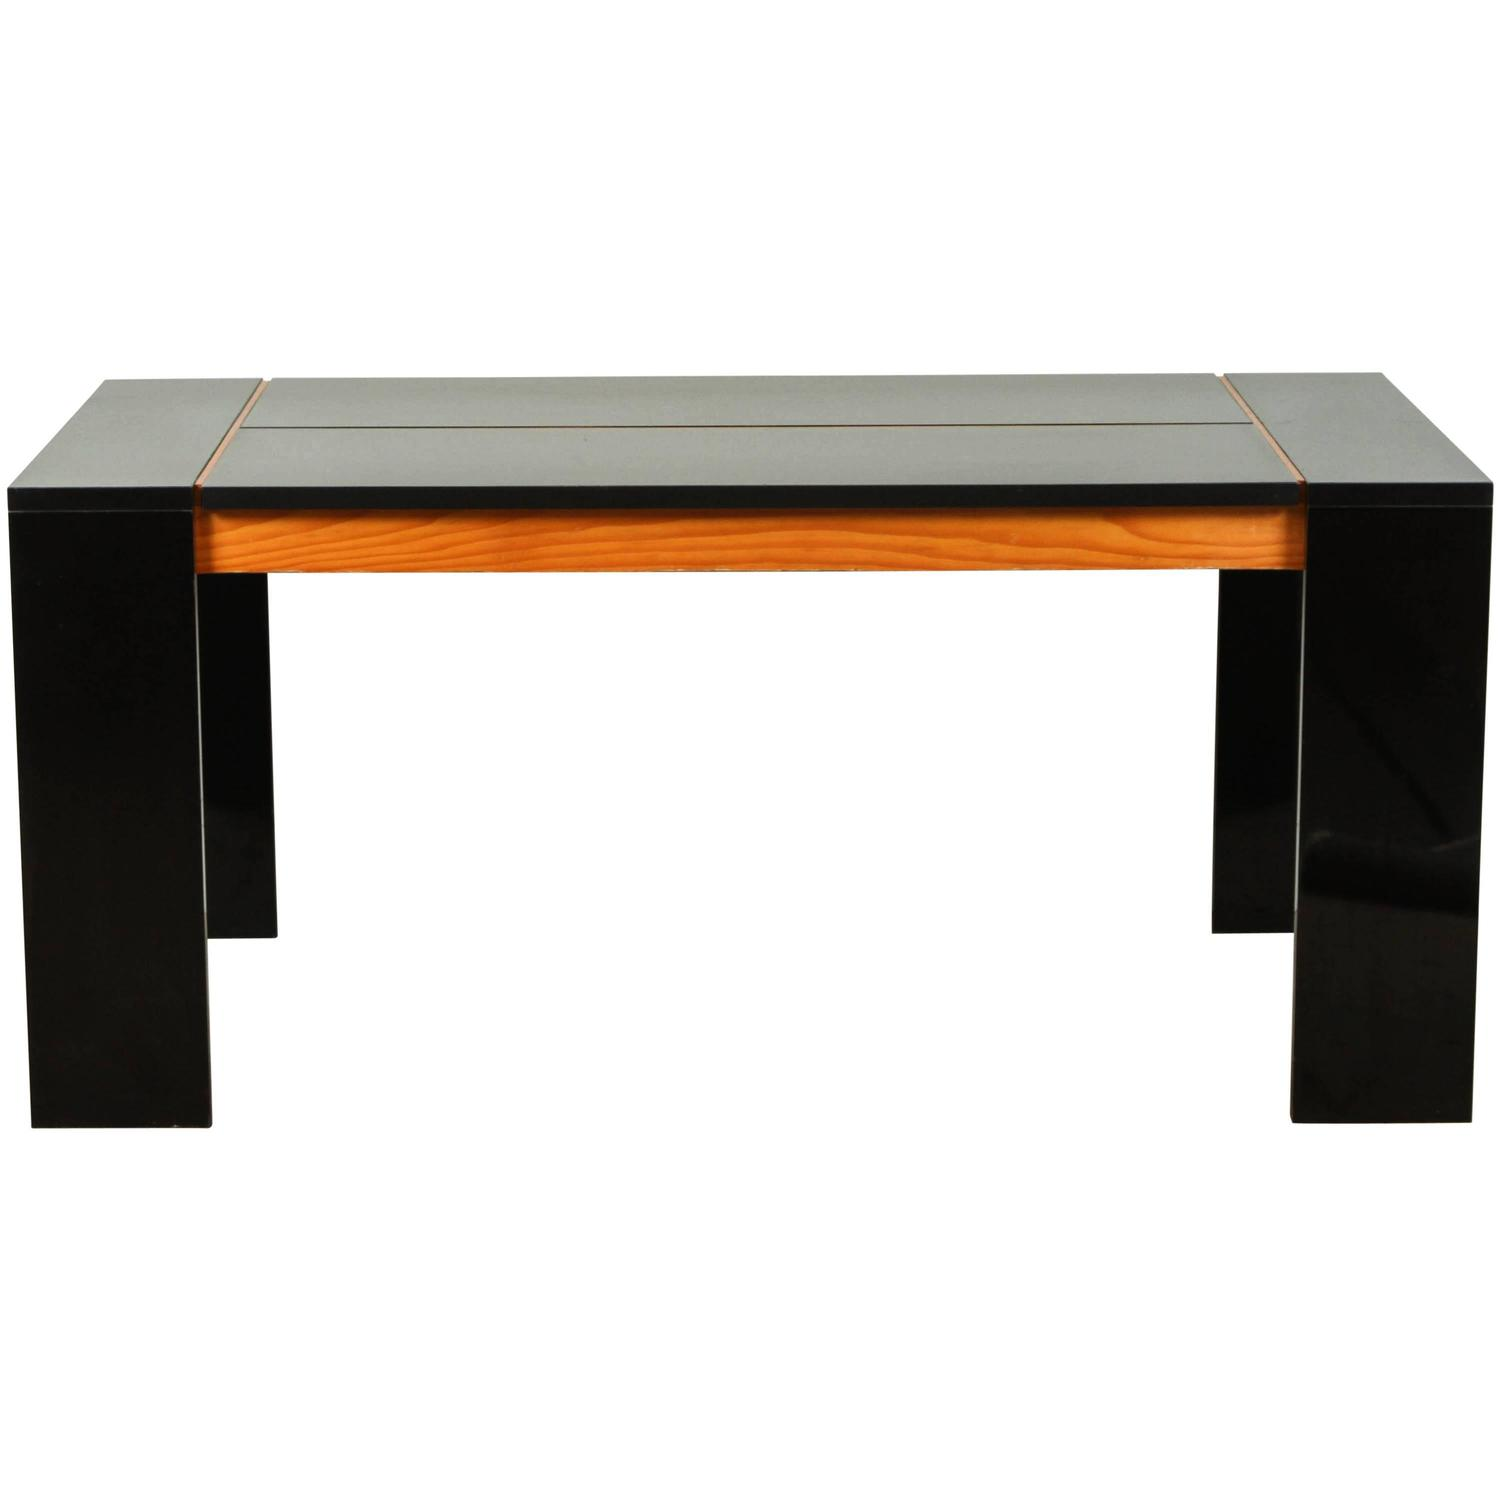 Italian modern dining table in black laminate and douglas fir for sale at 1stdibs - Laminate kitchen tables ...